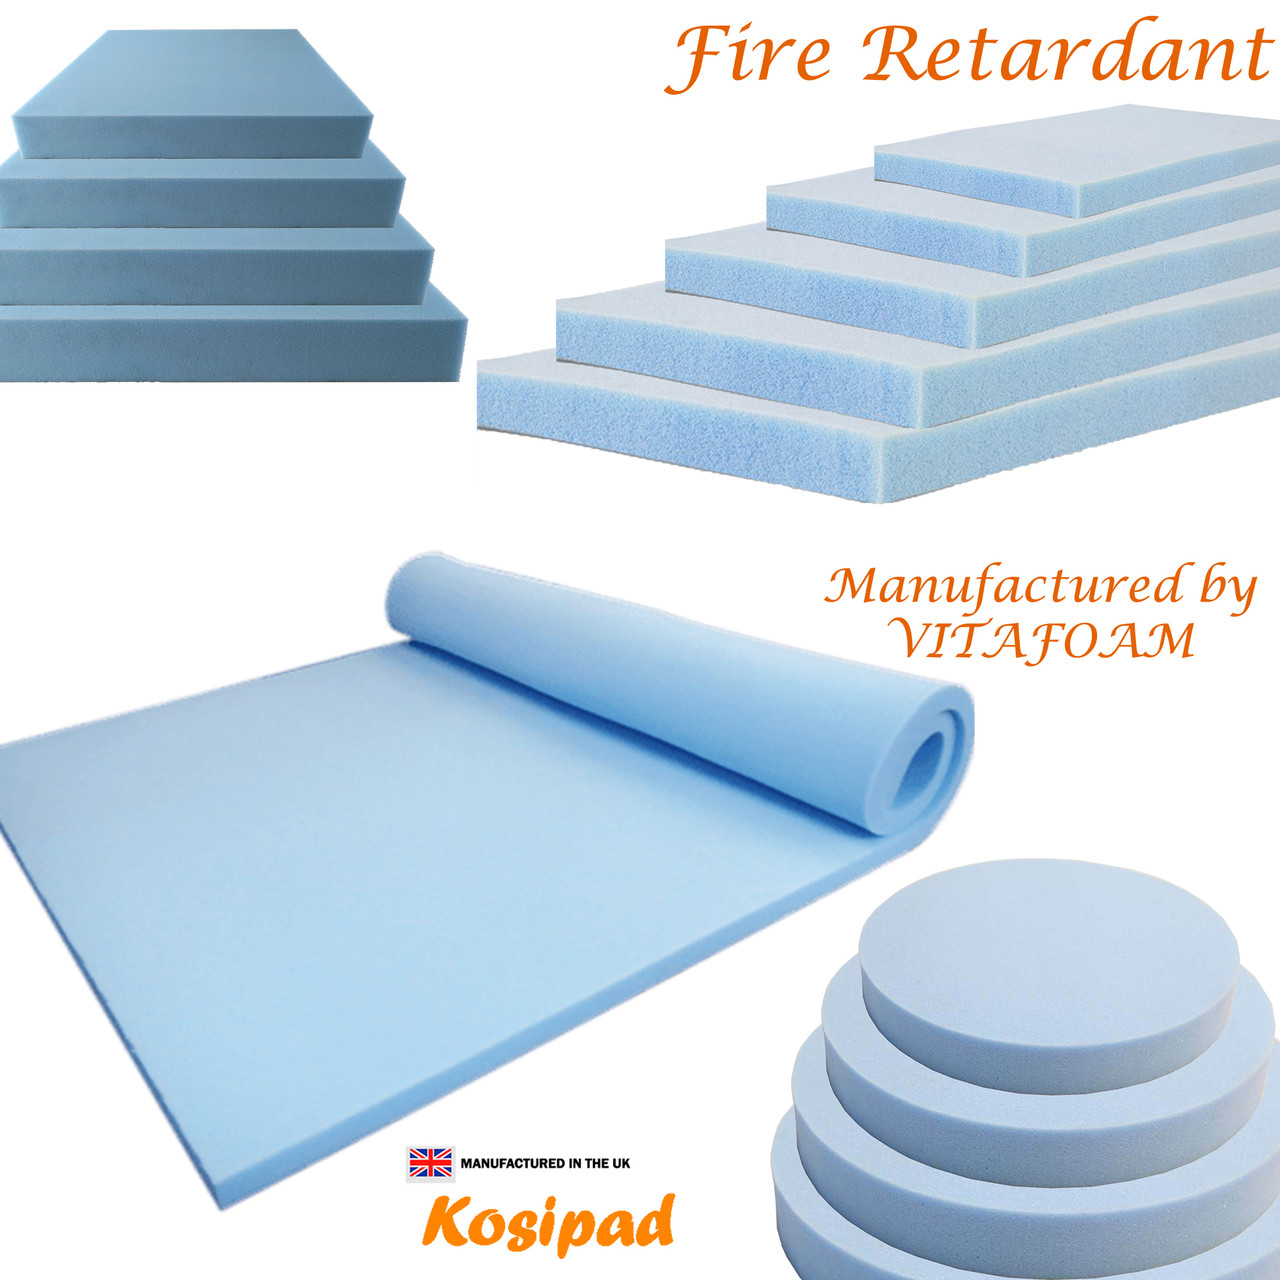 Custom Cut  foam pads for your  Upholstery, Cushion Pads, Seating, Sofa's, Patio Furniture Square